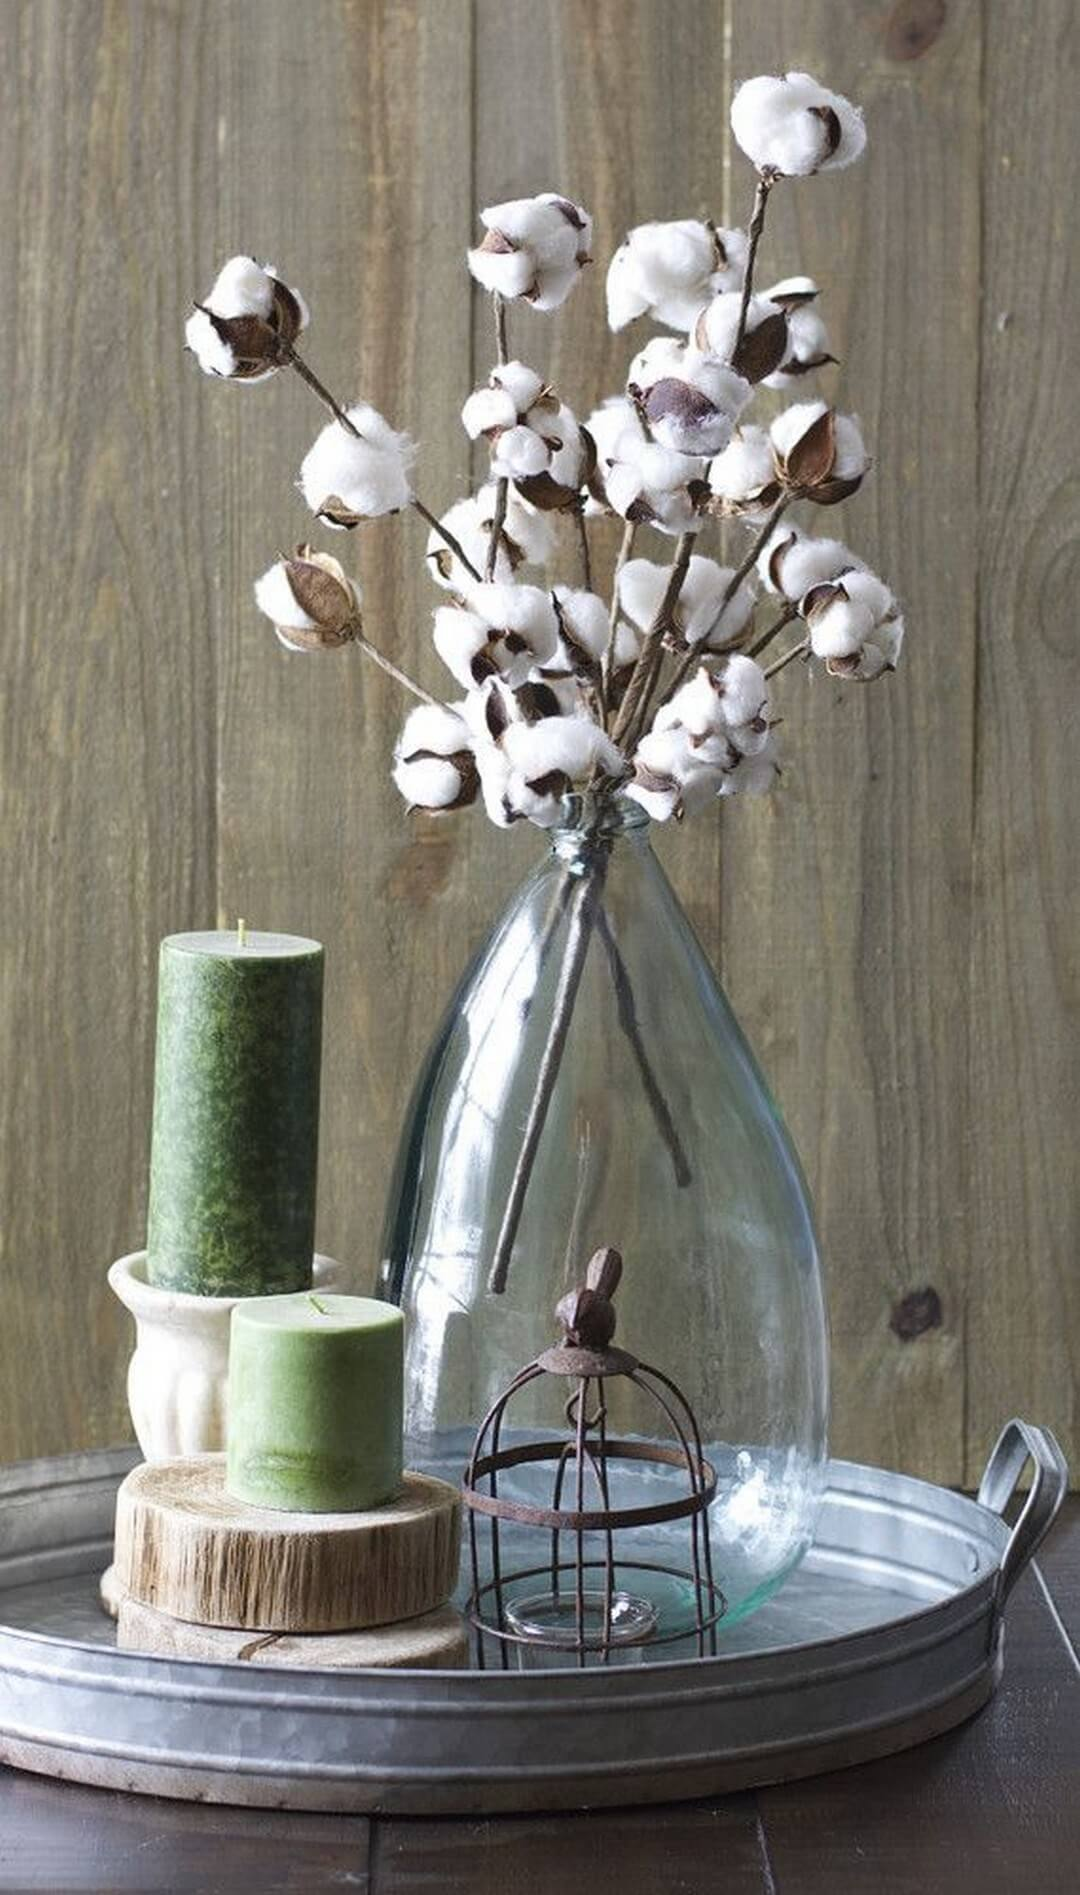 Tall Glass Vase with Cotton Blooms